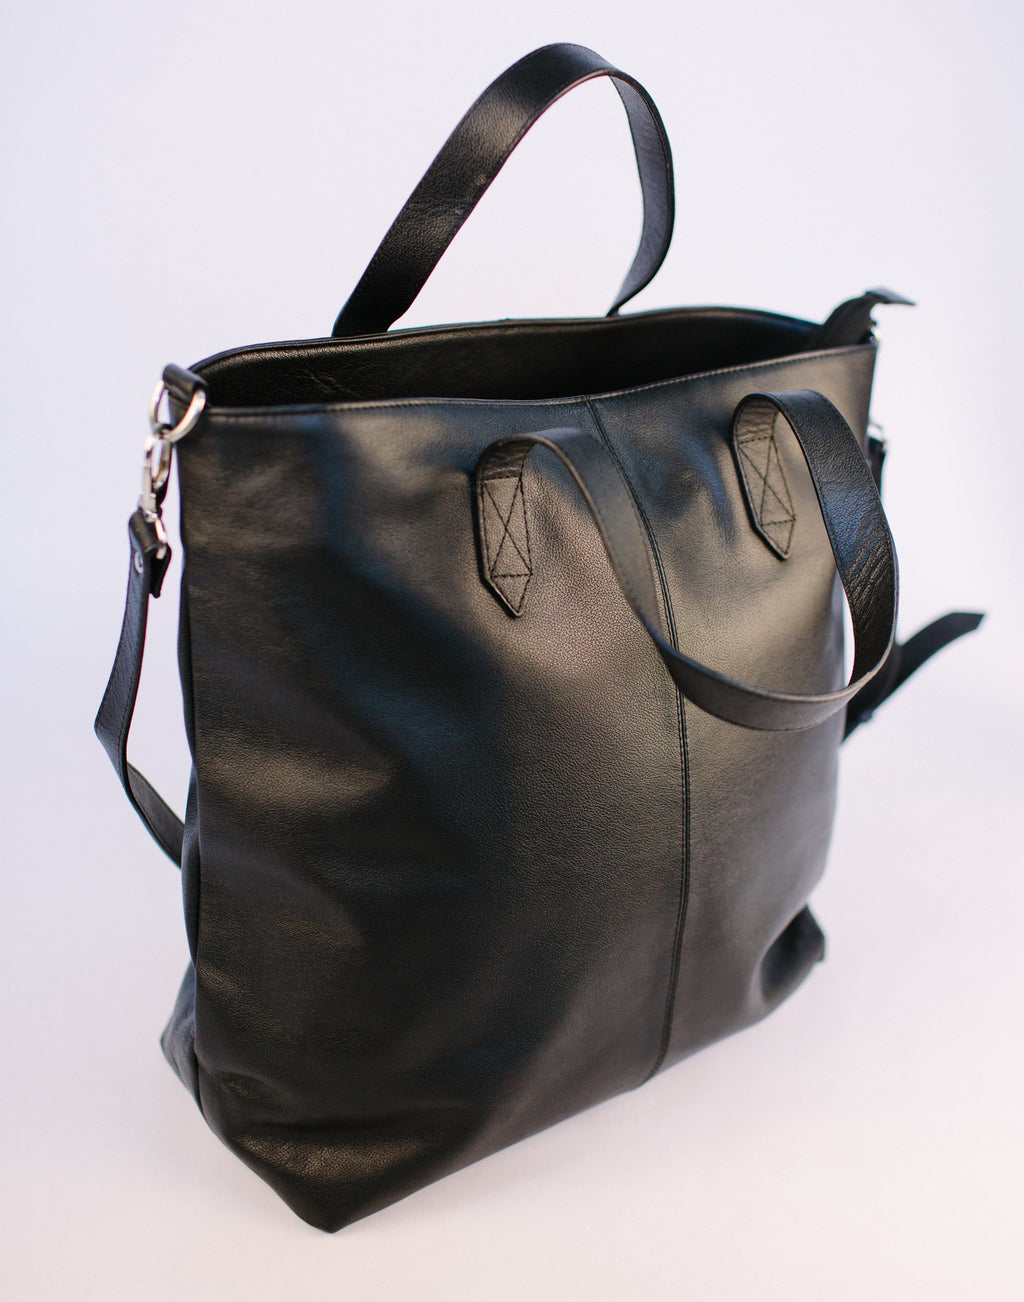 Black Zipped Tote